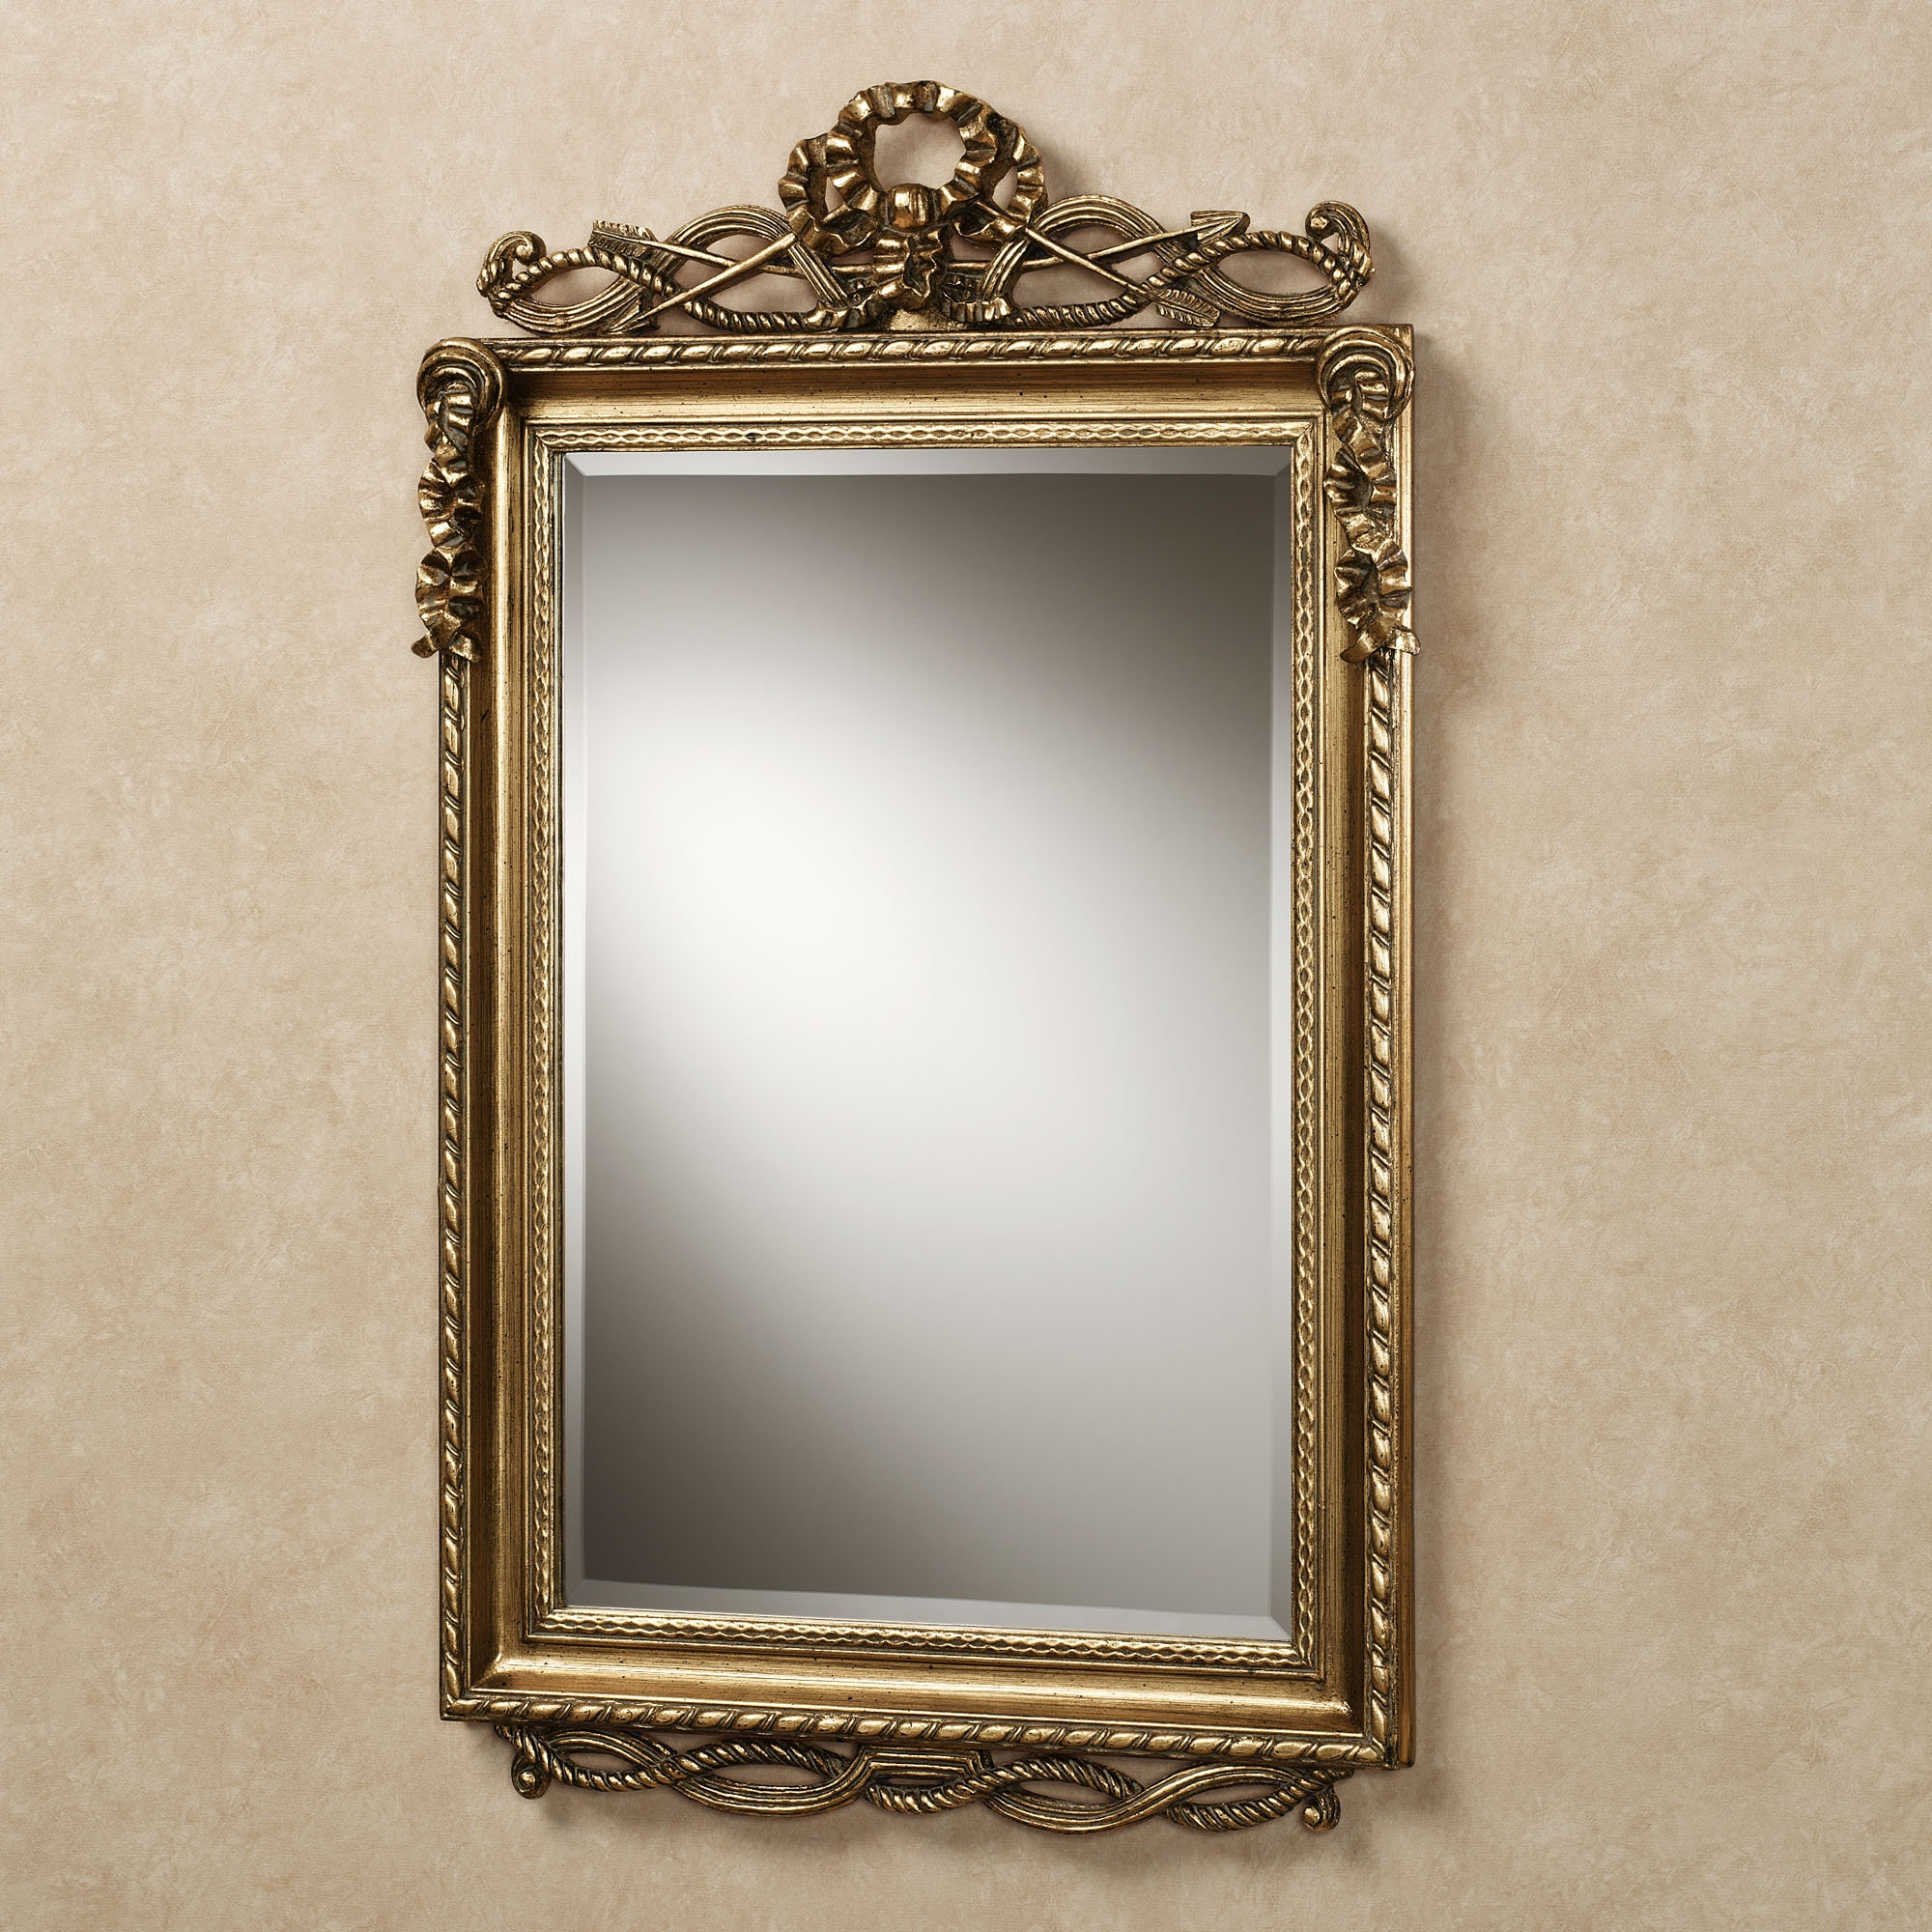 Innovative Ideas Vintage Wall Mirrors Incredible Design Gold Regarding Gold Antique Mirrors (Photo 7 of 15)